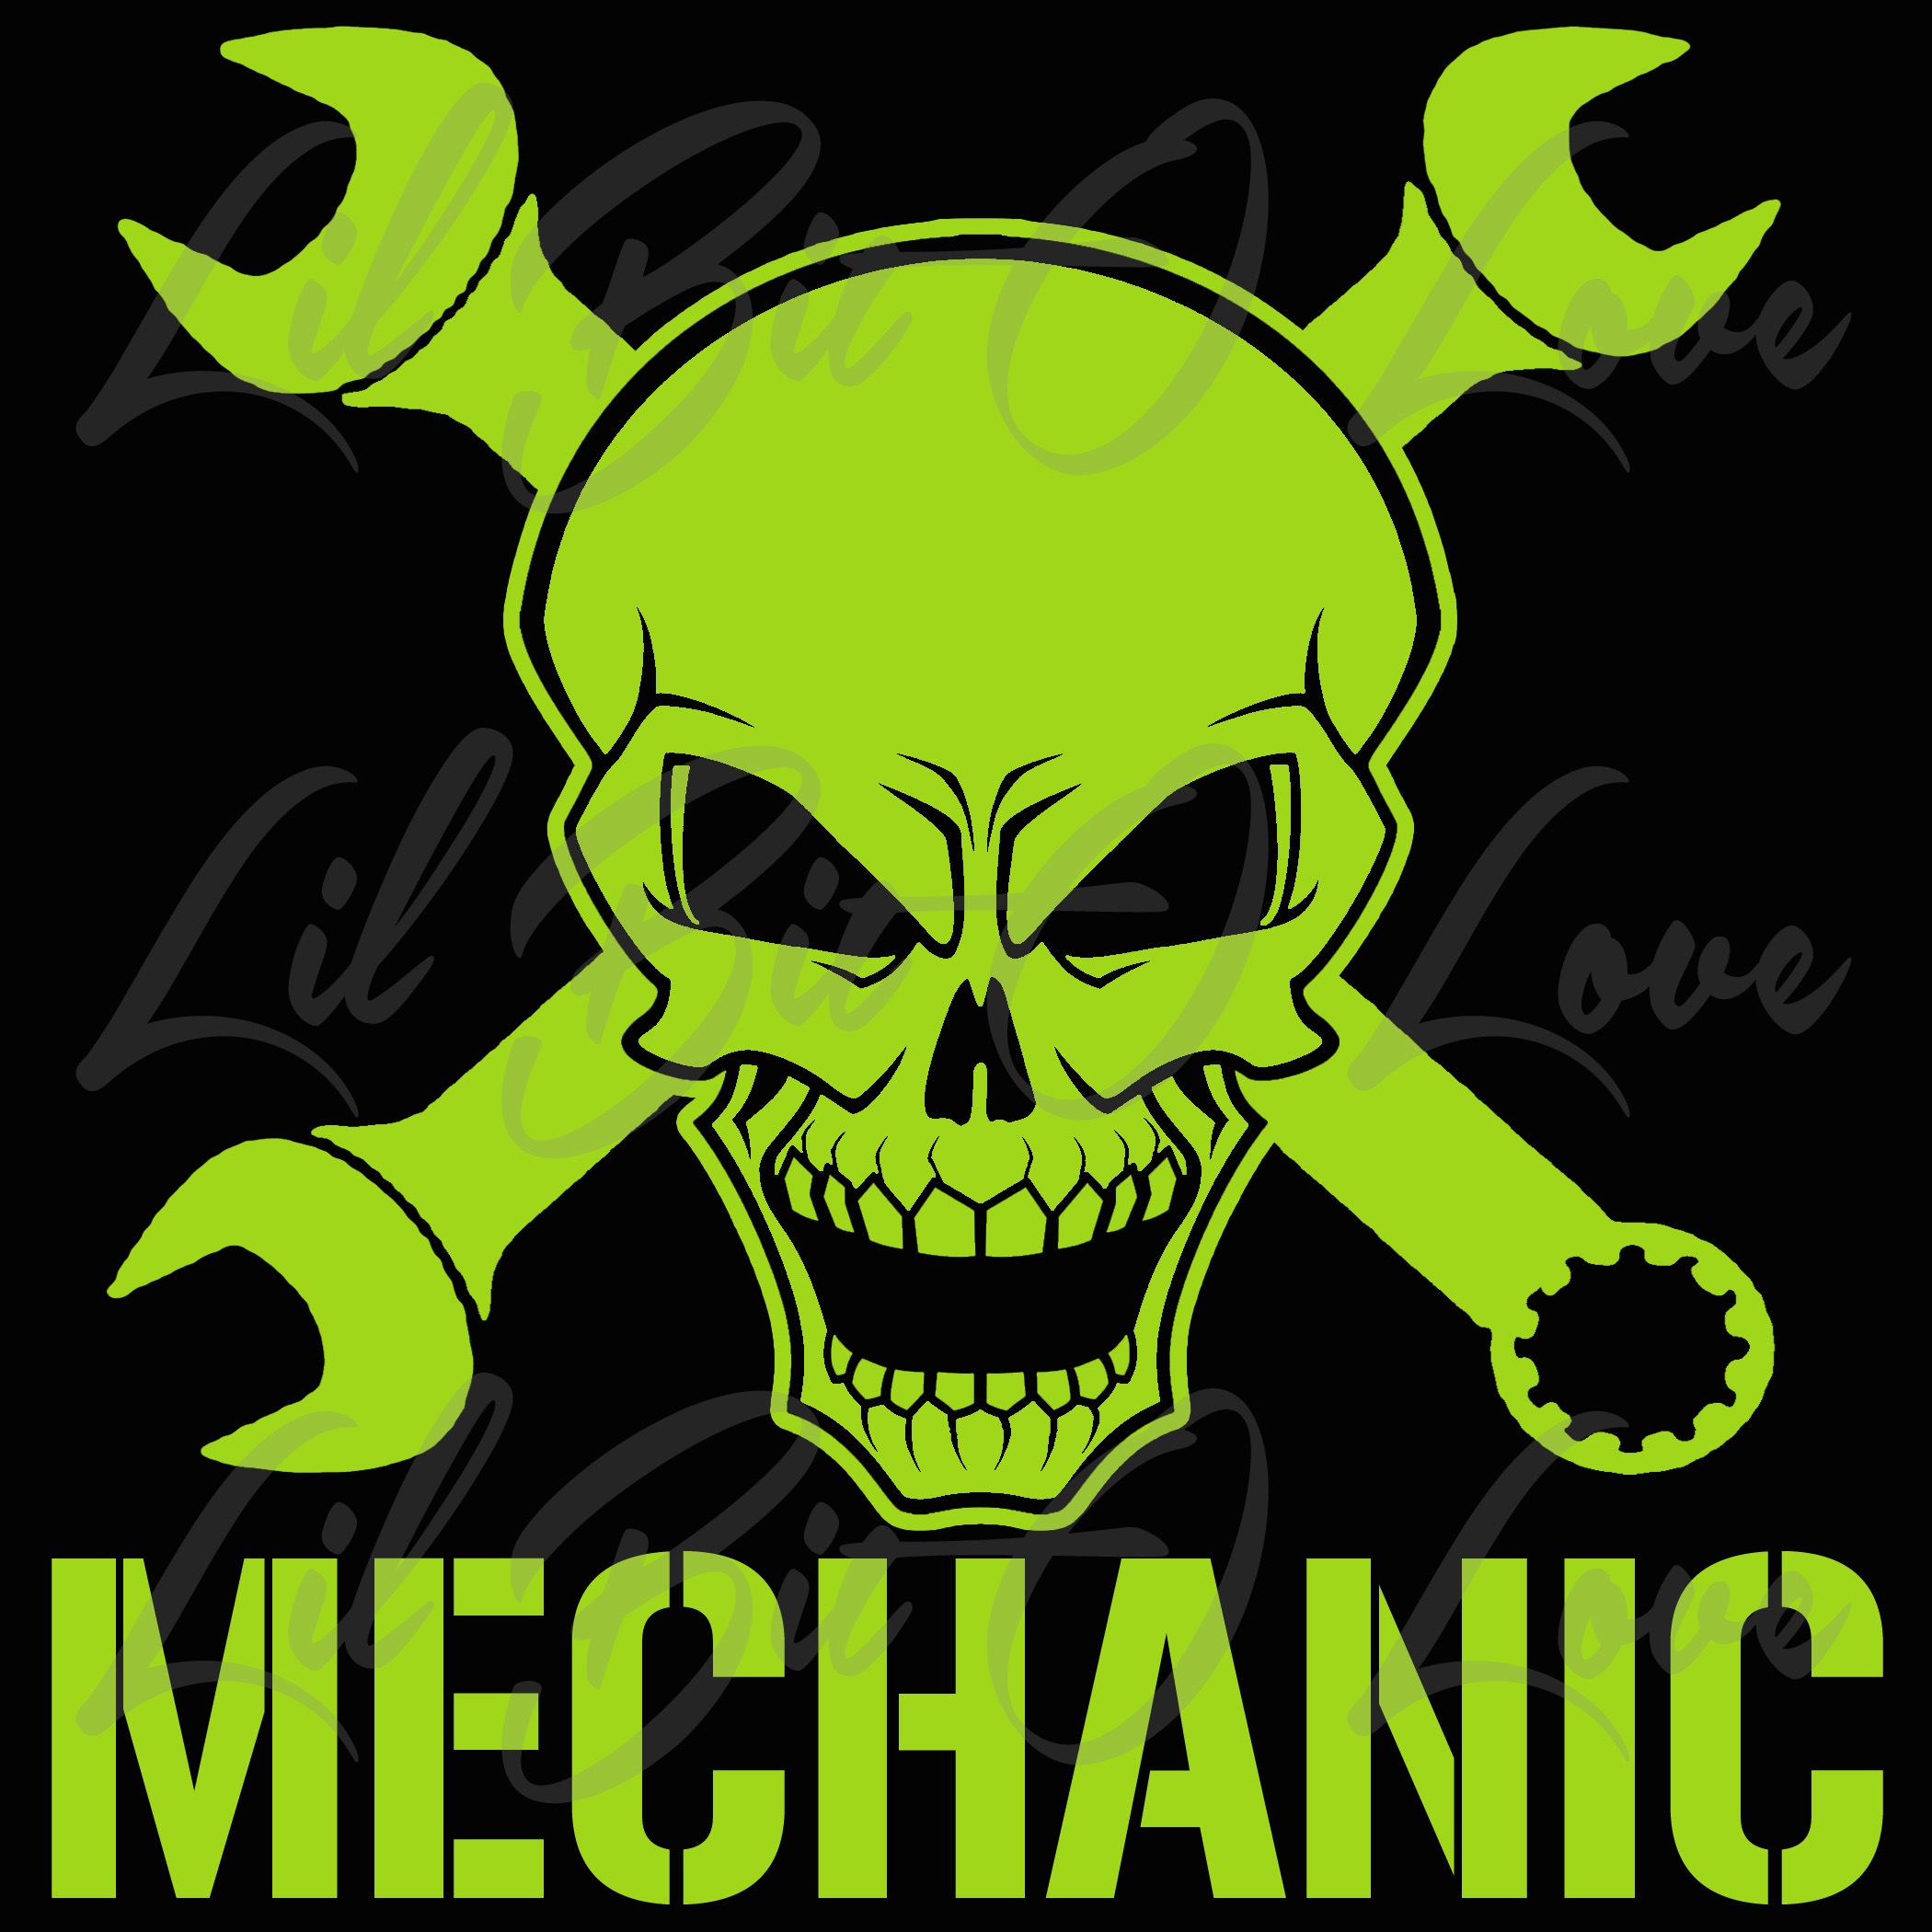 Mechanic Skull With Cross Wrench Design 2 By Lilbitolove